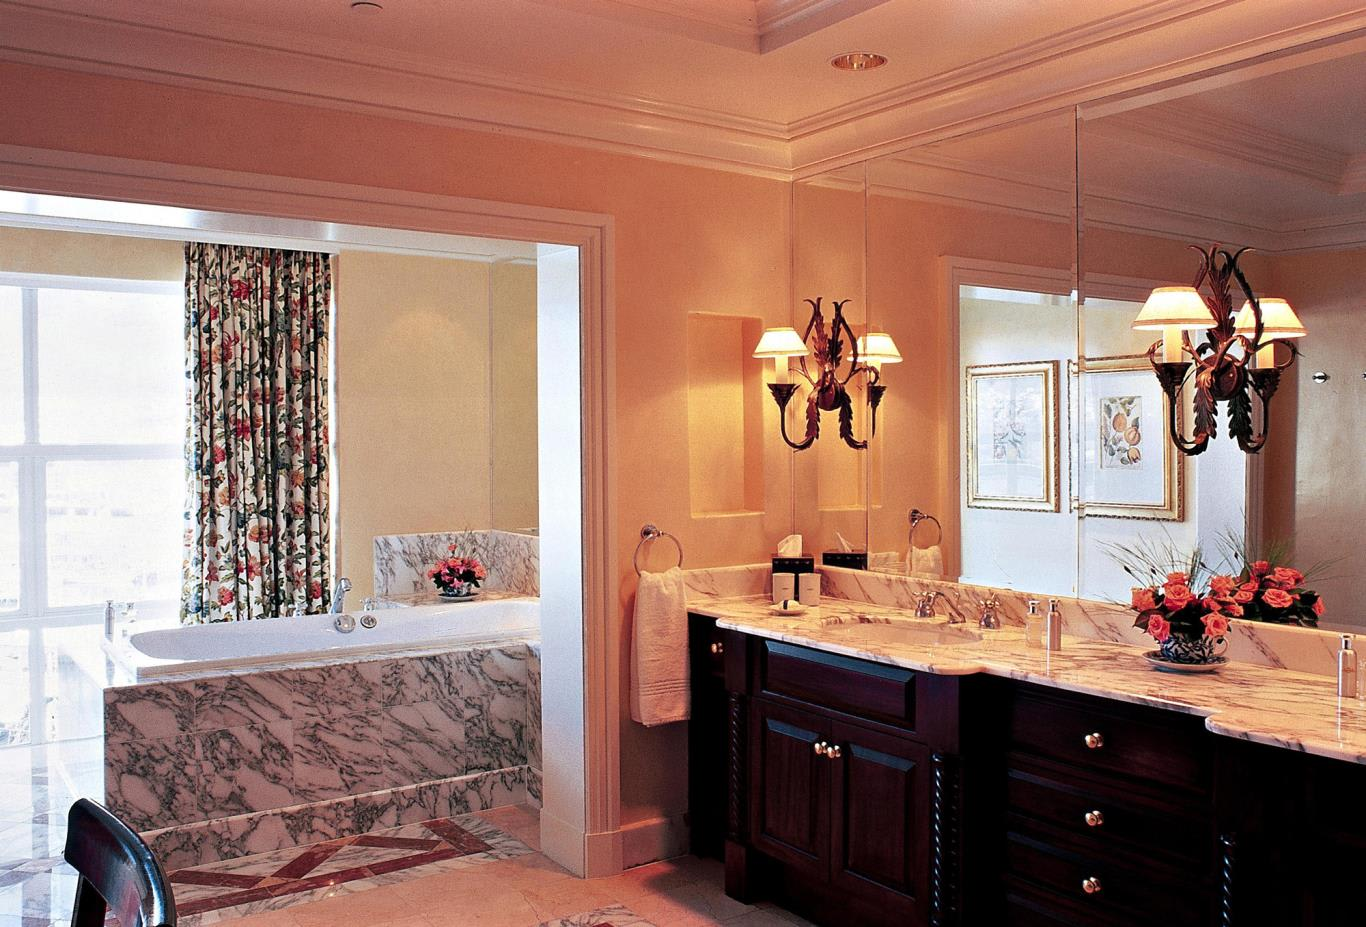 Table-Mountain-Suite-Bathroom